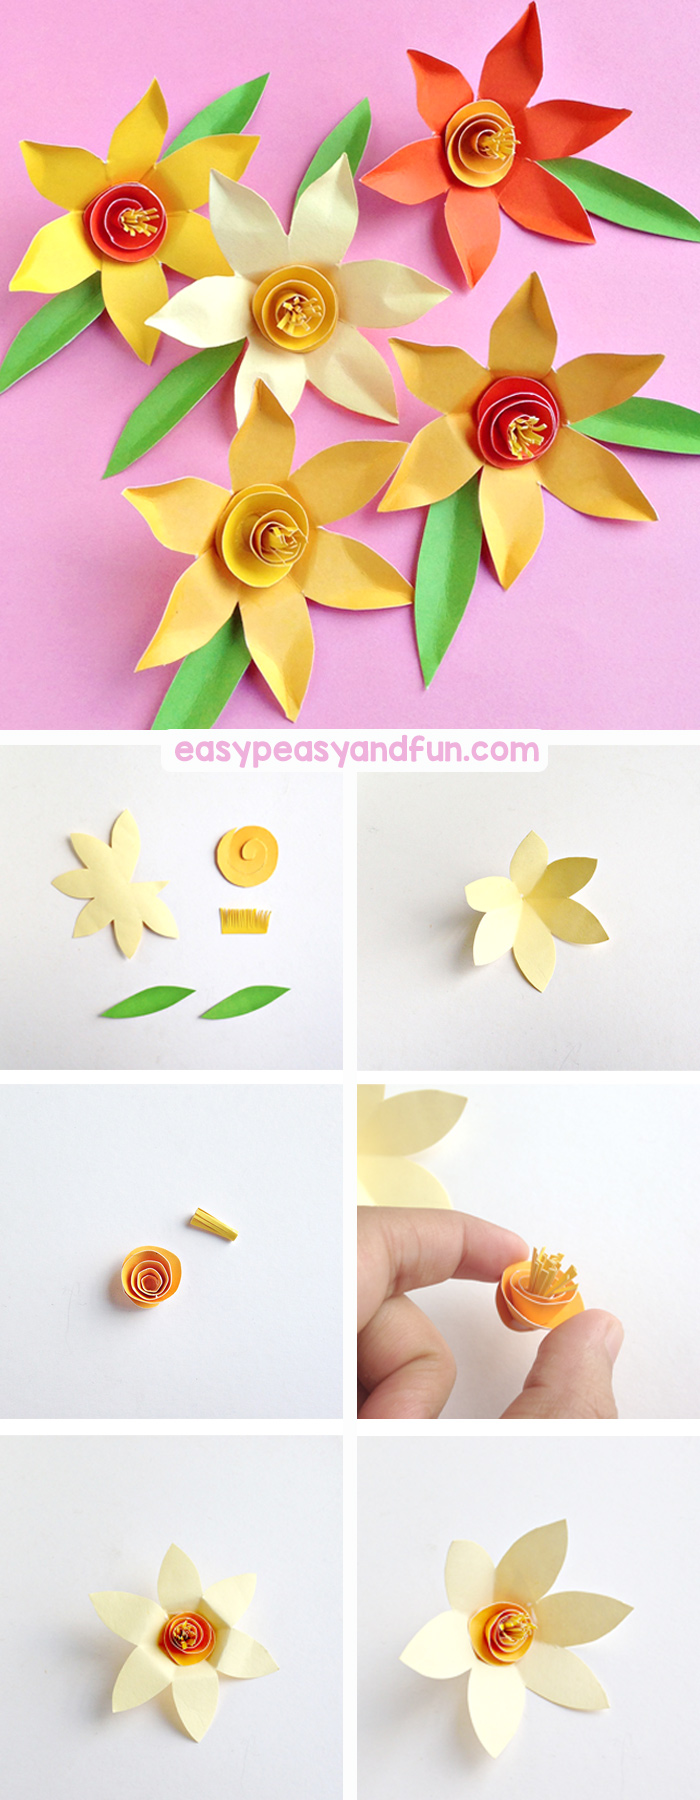 How to Make Paper Daffodils - step by step tutorial